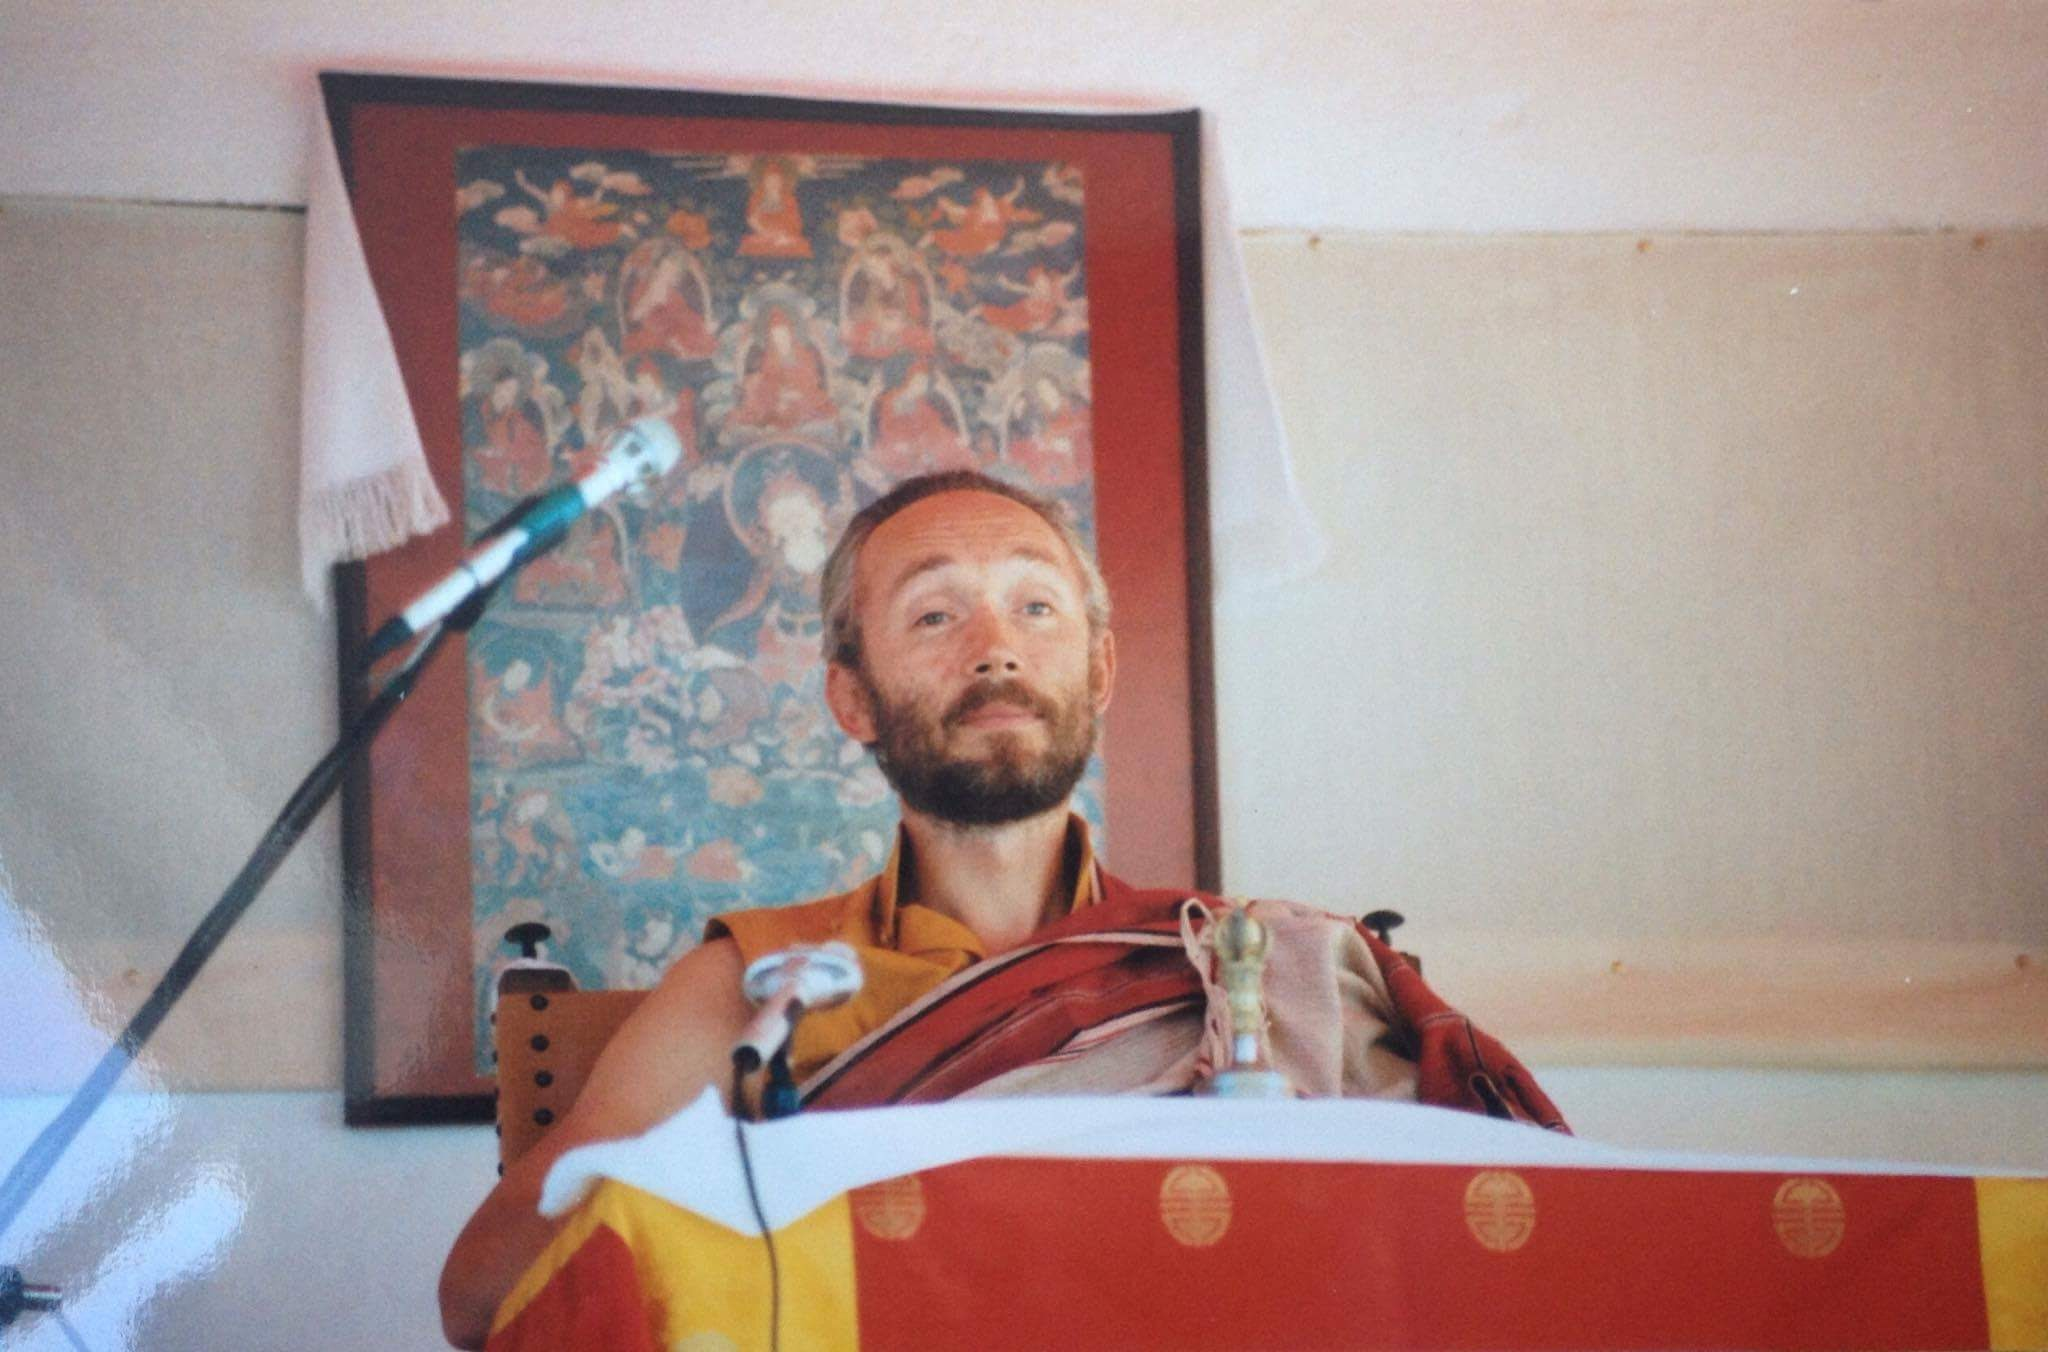 Robert Spatz, guru of the OKC cult, gets 4 years' suspended sentence –  Tibetan Buddhism – Struggling With Diffi·Cult Issues